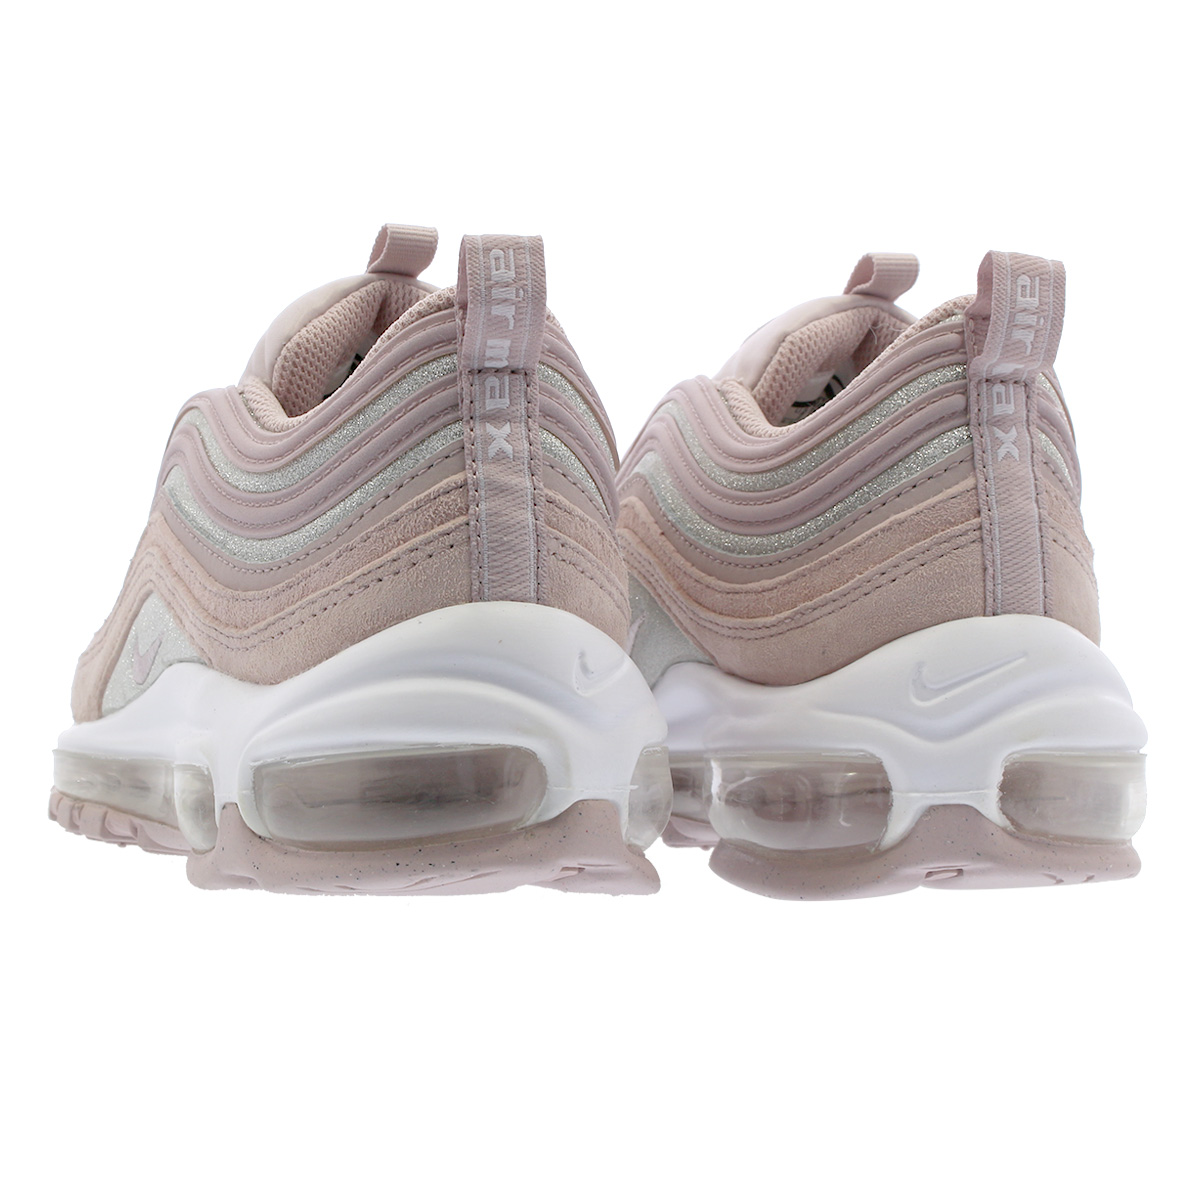 136bfc9be95 ... 50% off nike wmns air max 97 nike women air max 97 particle rose  particle